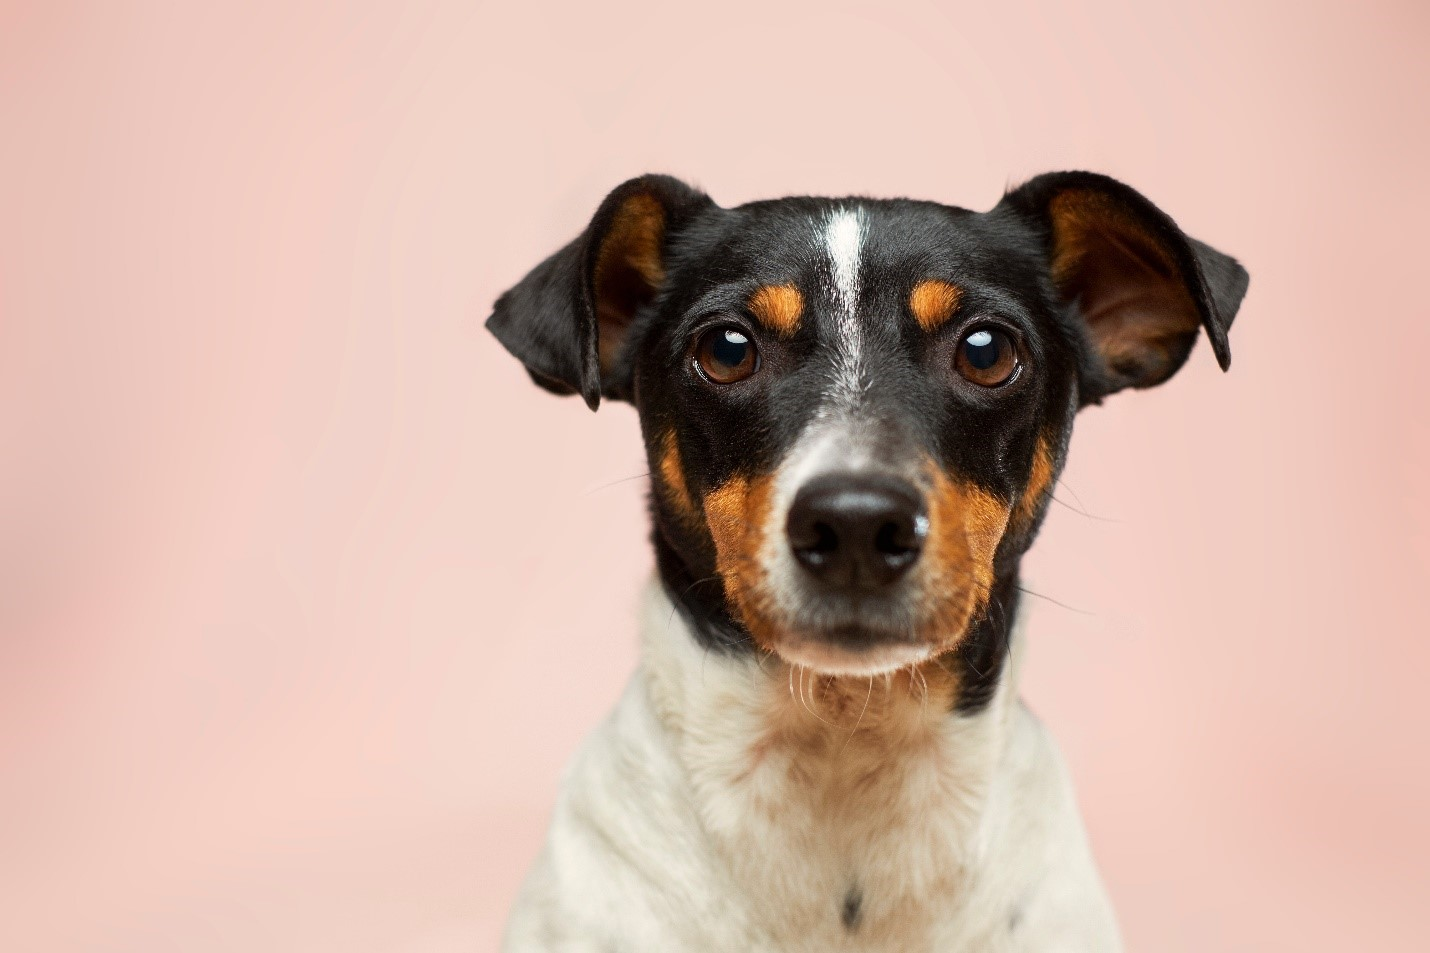 A dog sitting in front of pink background